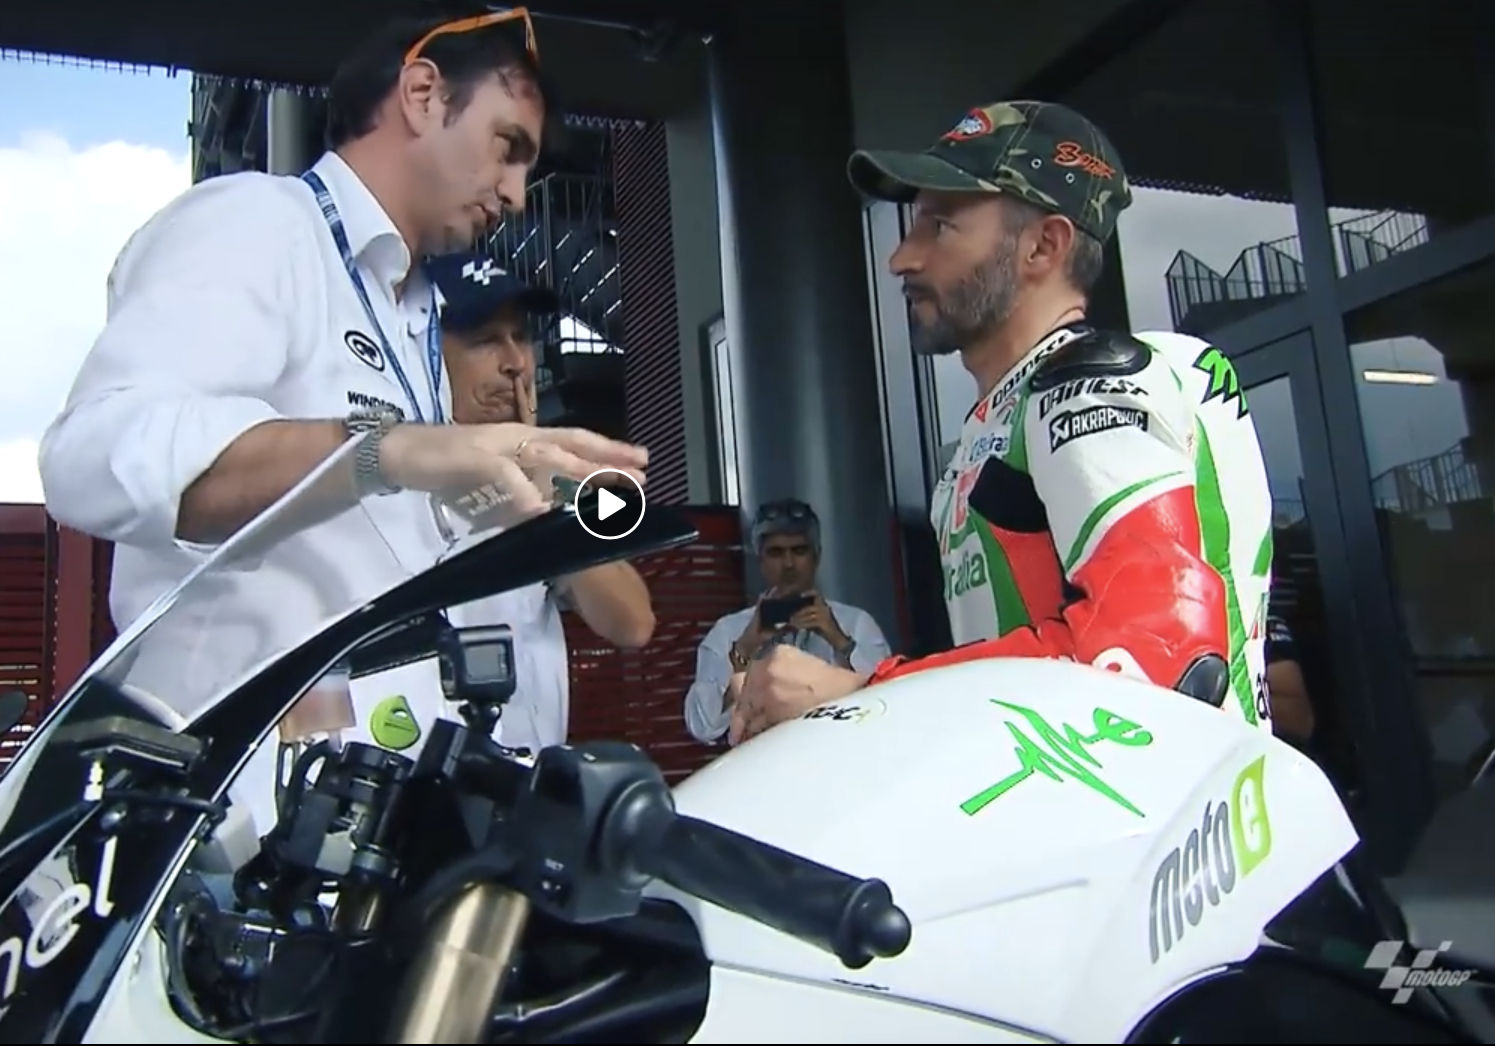 Video of max biaggi lapping mugello on energica ego corsa news retired multi time world champ max biaggi took a lap of the mugello track yesterday prior to the motogp event aboard the energica ego corsa the electric altavistaventures Gallery